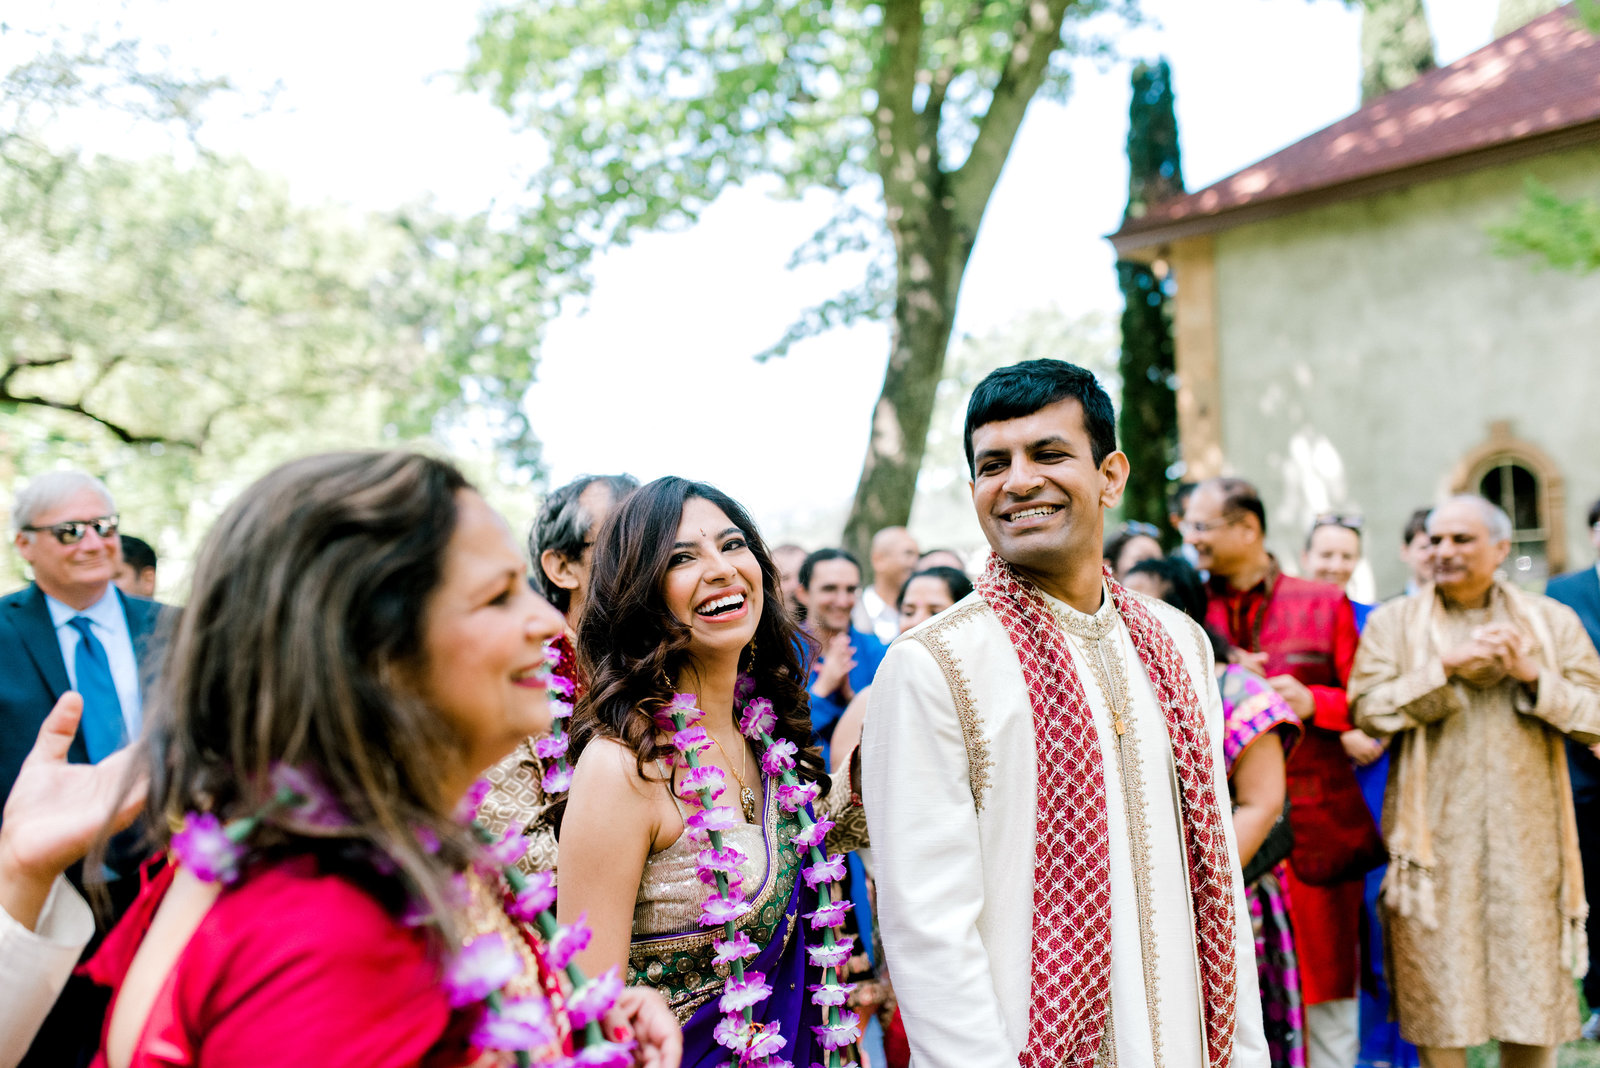 Indian wedding at Charles Krug Winery in Saint Helena, California